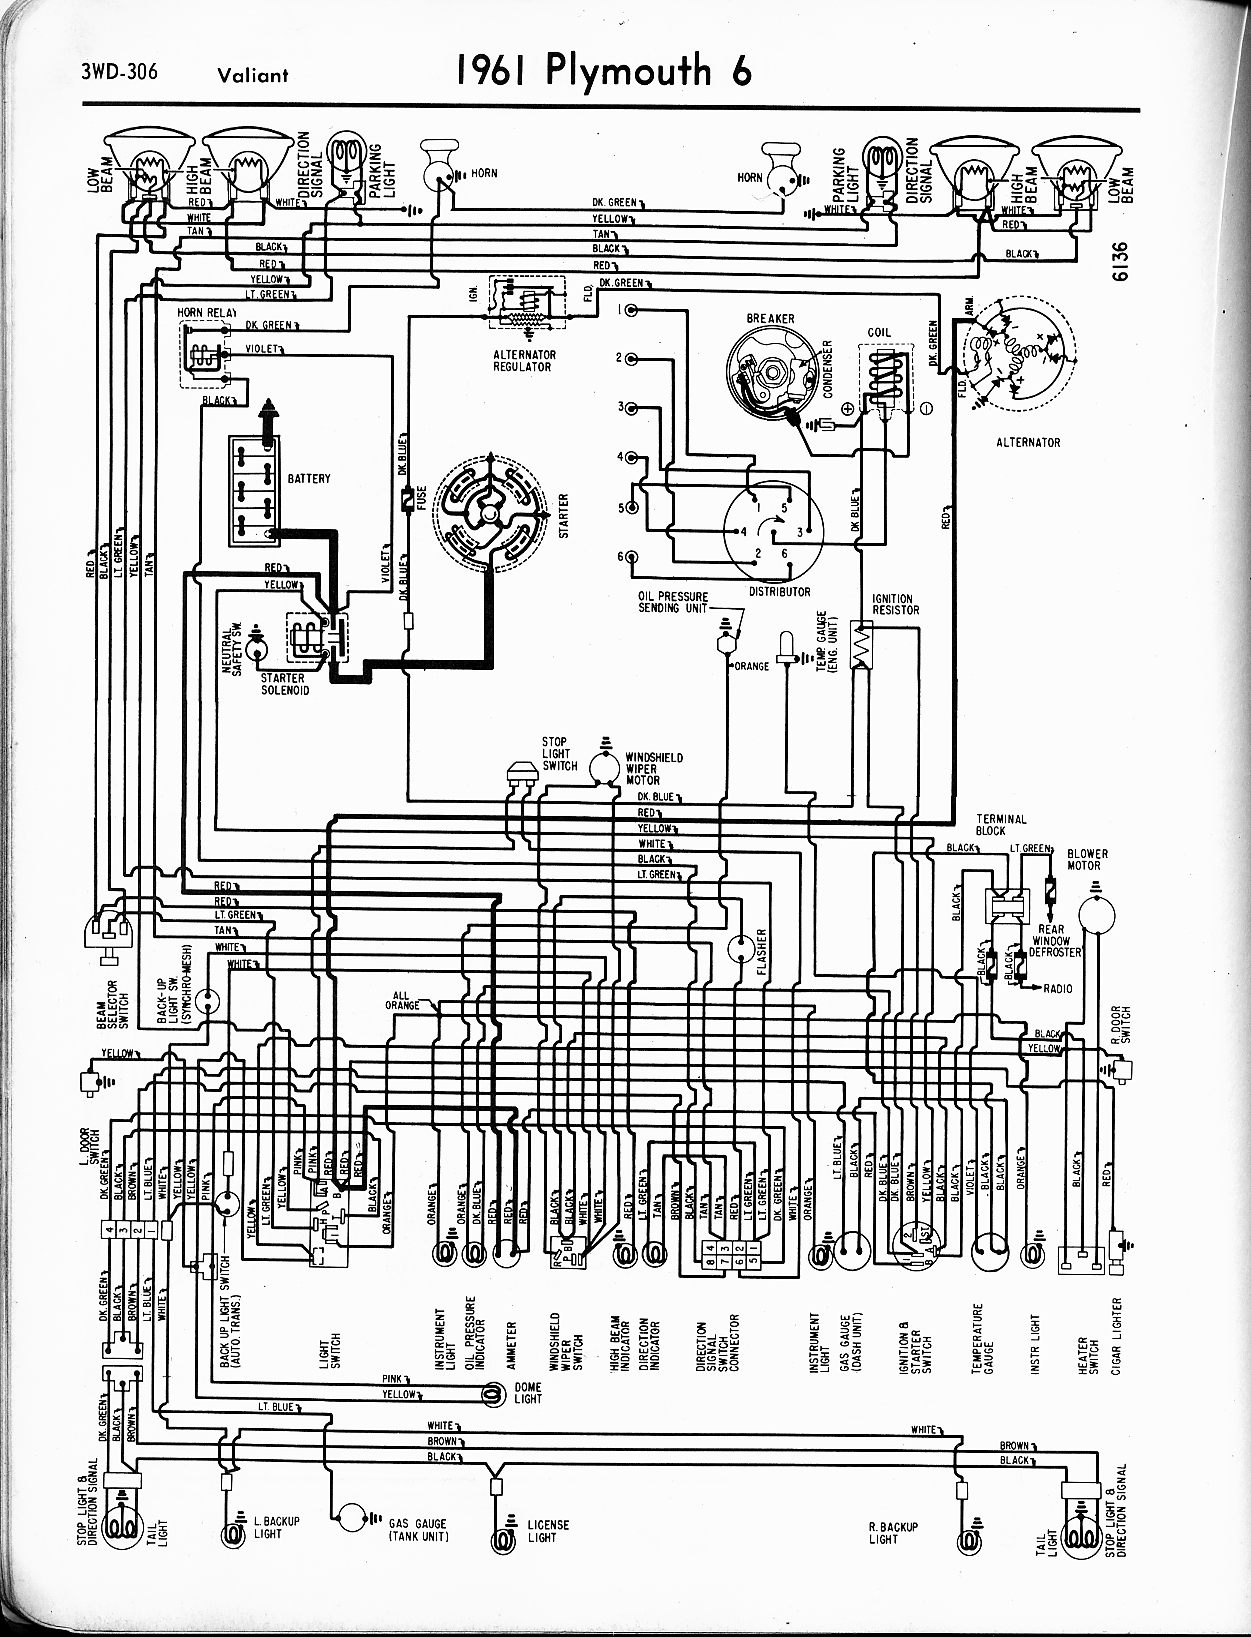 1956 - 1965 Plymouth Wiring - The Old Car Manual Project - Dodge Ignition Wiring Diagram